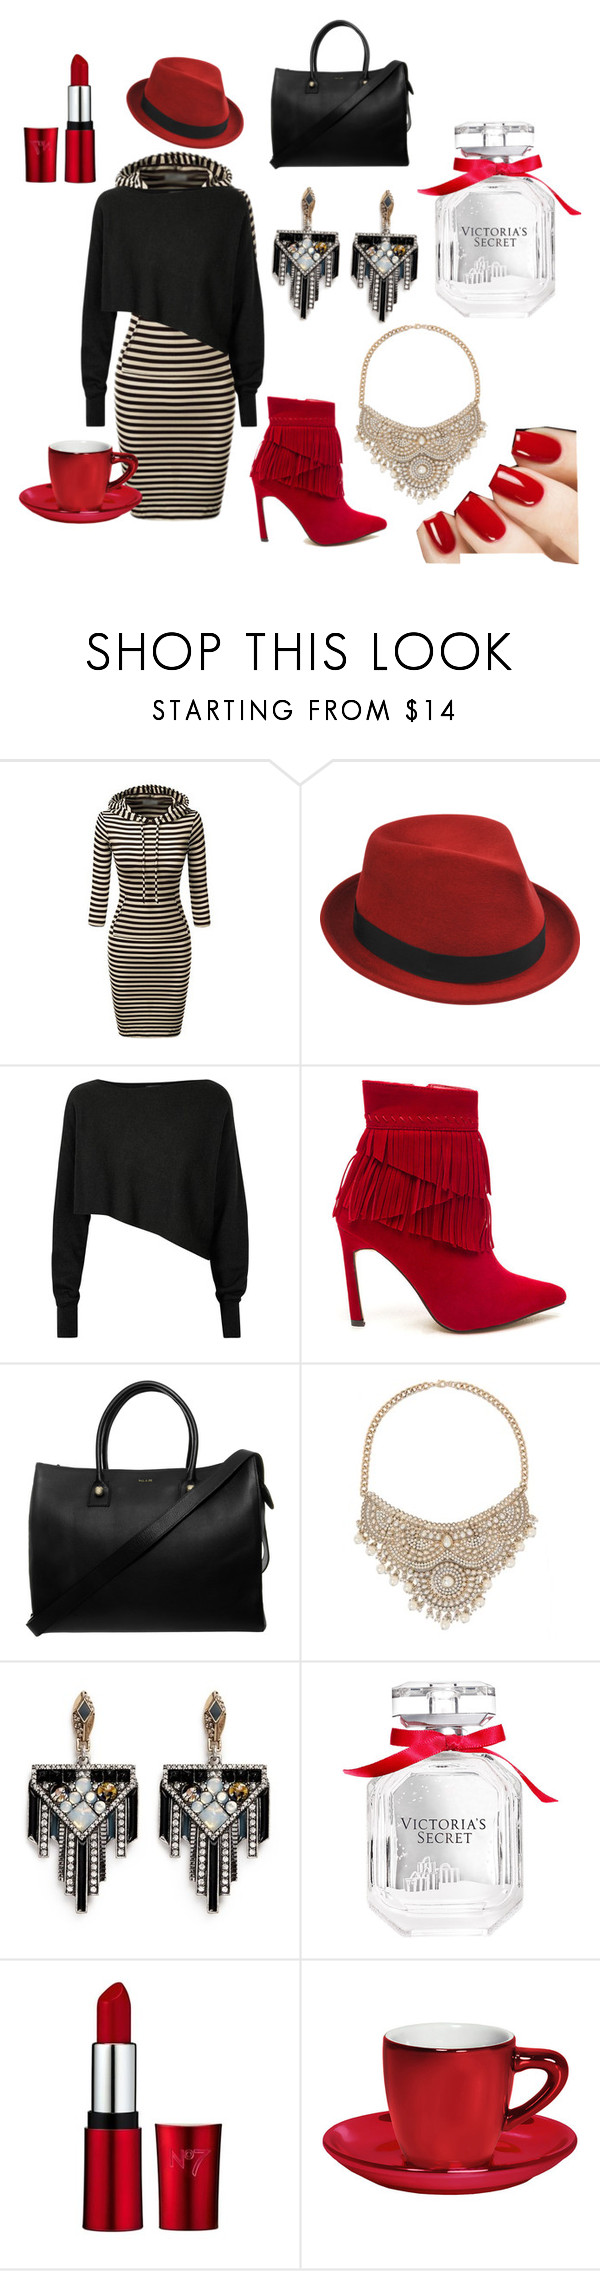 """""""In the Holiday mood"""" by lovehermadly75 ❤ liked on Polyvore featuring Stetson, Crea Concept, Paul & Joe, Bebe, Lulu Frost, Victoria's Secret, Bialetti, women's clothing, women and female"""